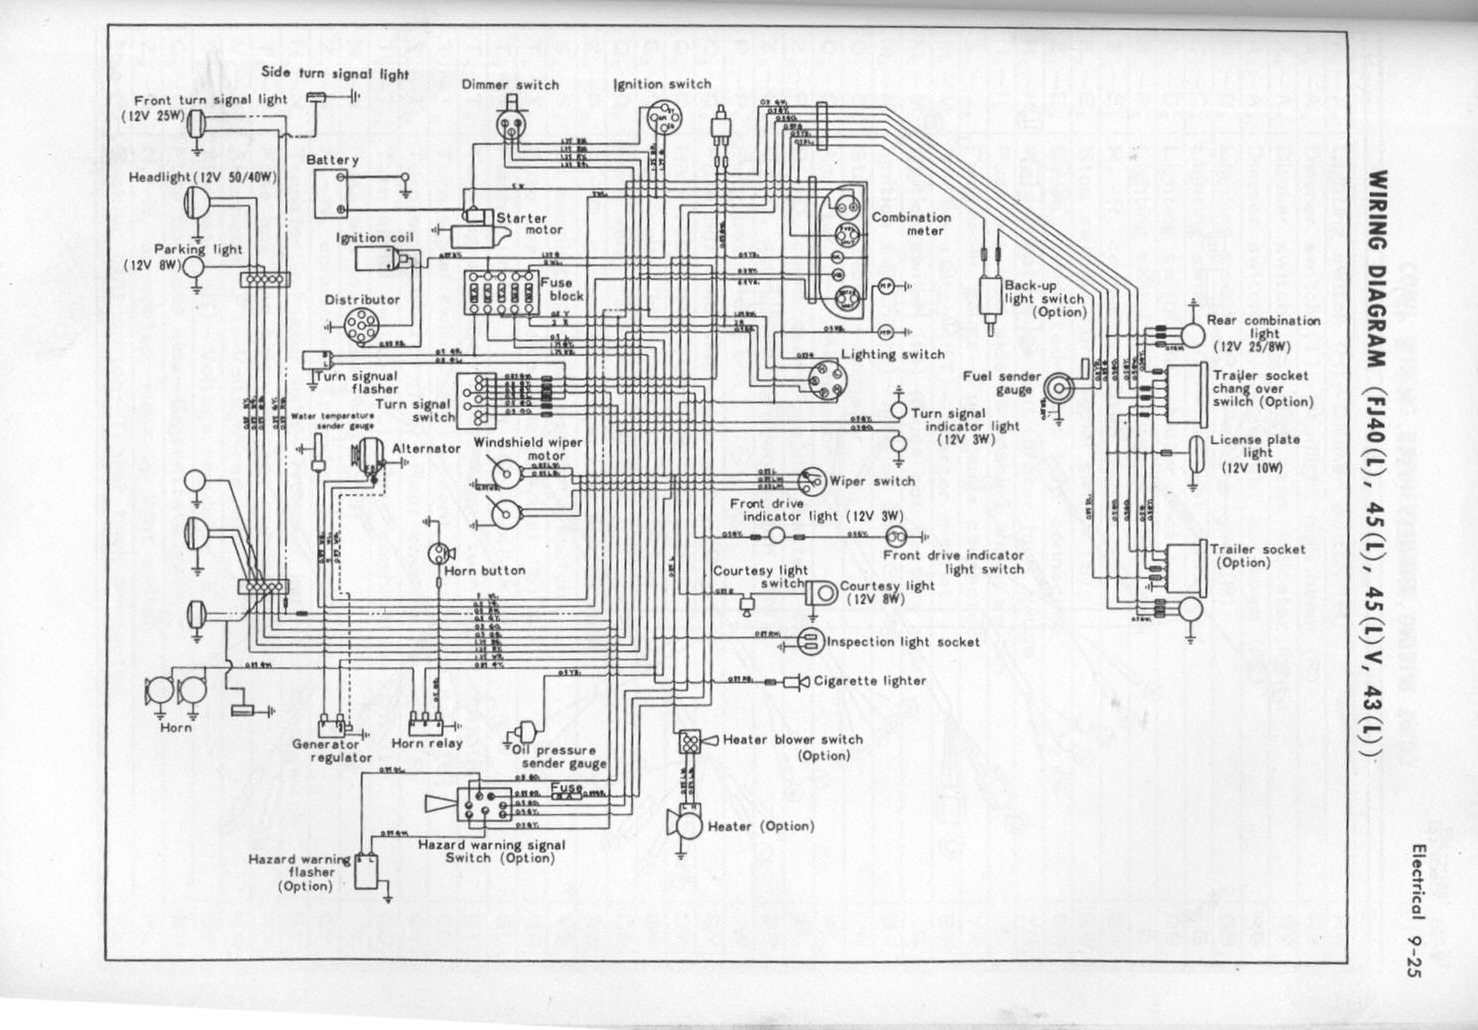 Schematics together with 1975 Chevy Suburban Wiring Diagram furthermore Fj40 Ignition Switch Wiring Diagram moreover 5a in addition Jeep Cj Fuse Box. on fj40 wiper motor wiring diagram